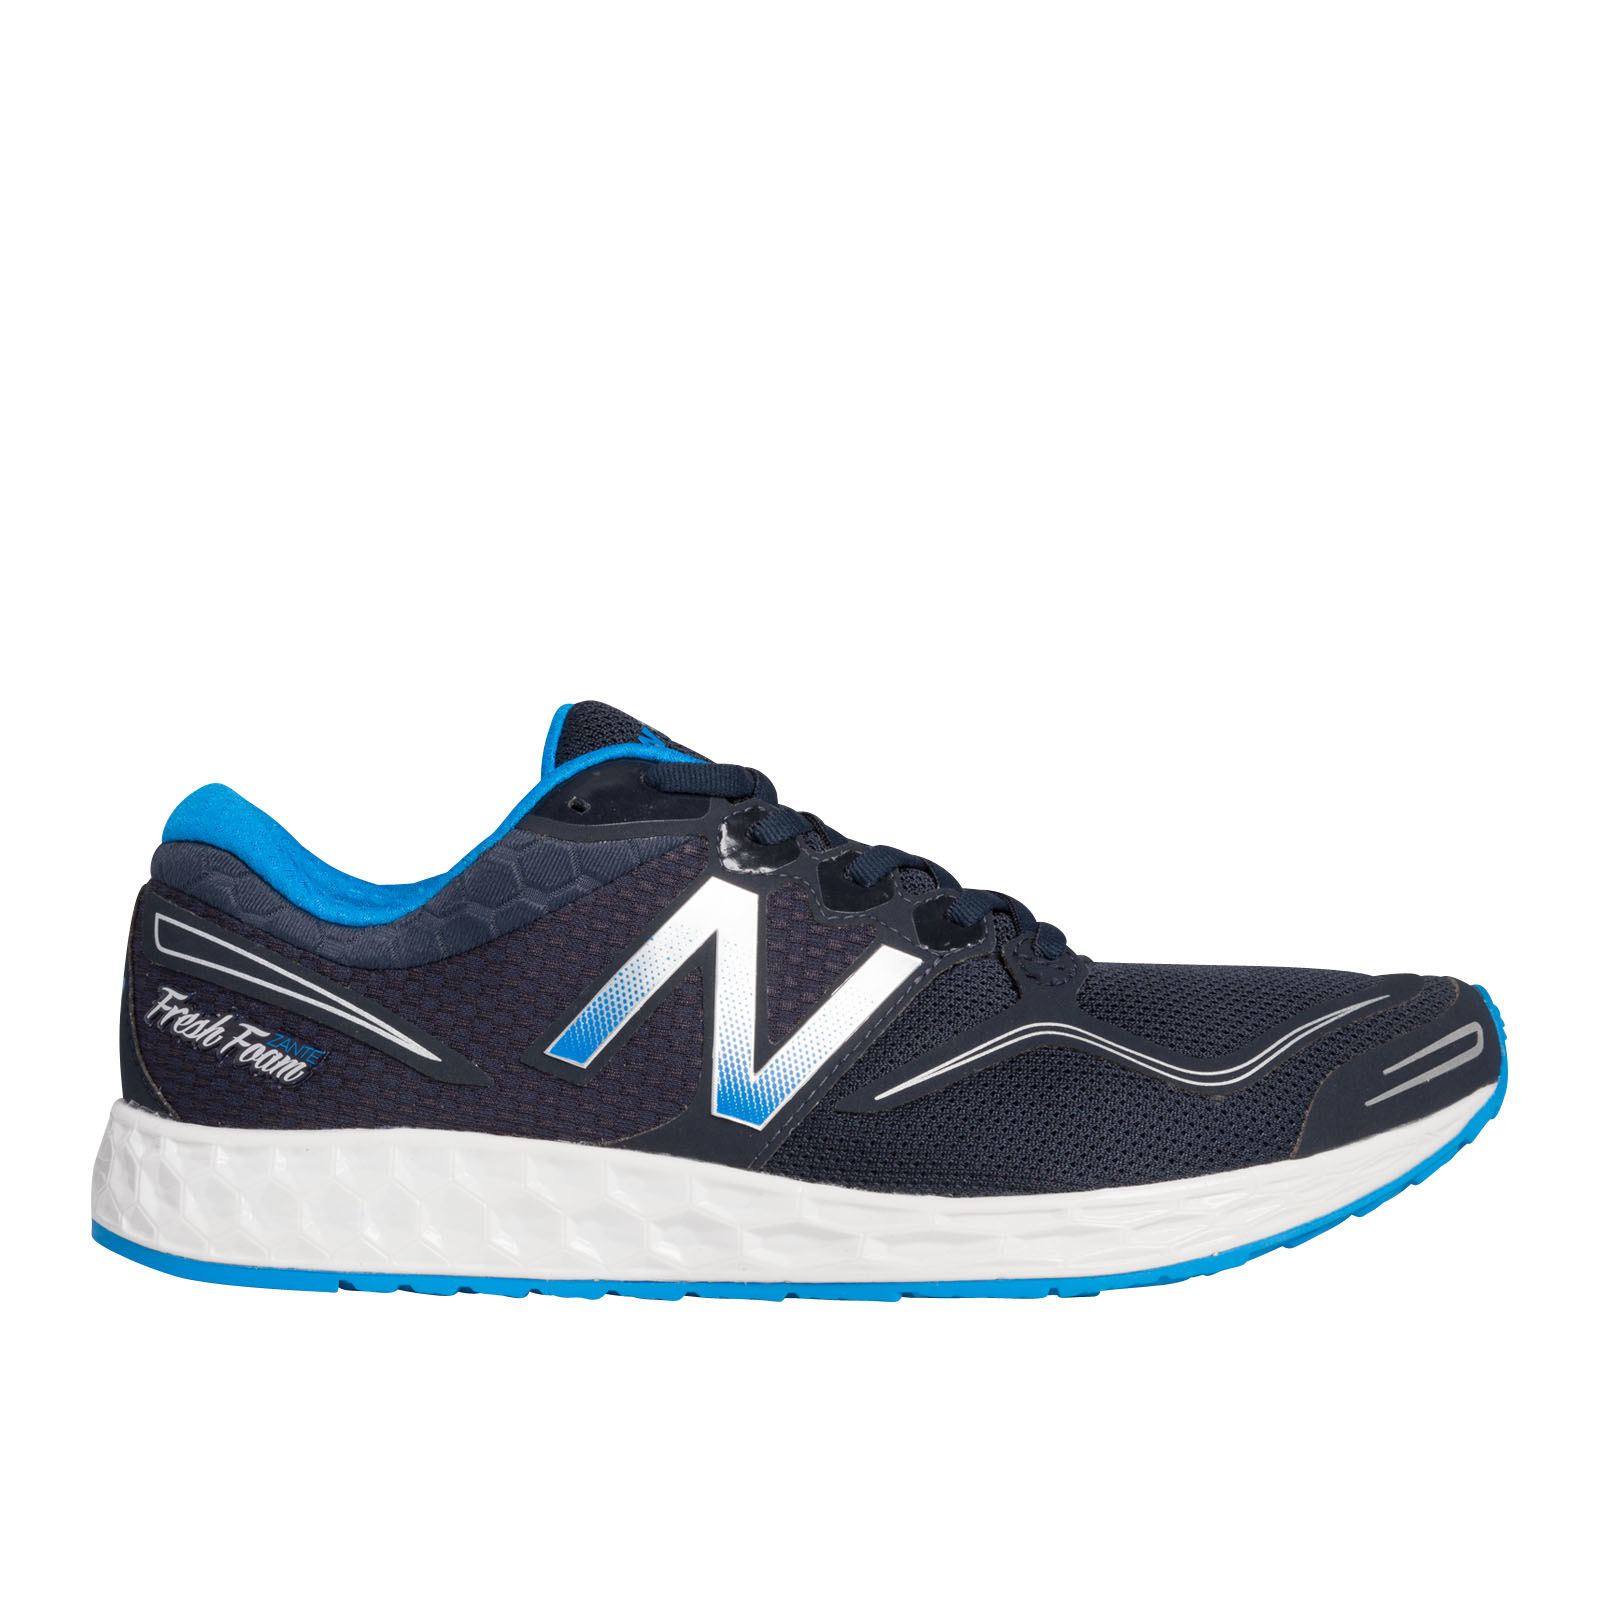 New Balance Zante in Blue/Grey